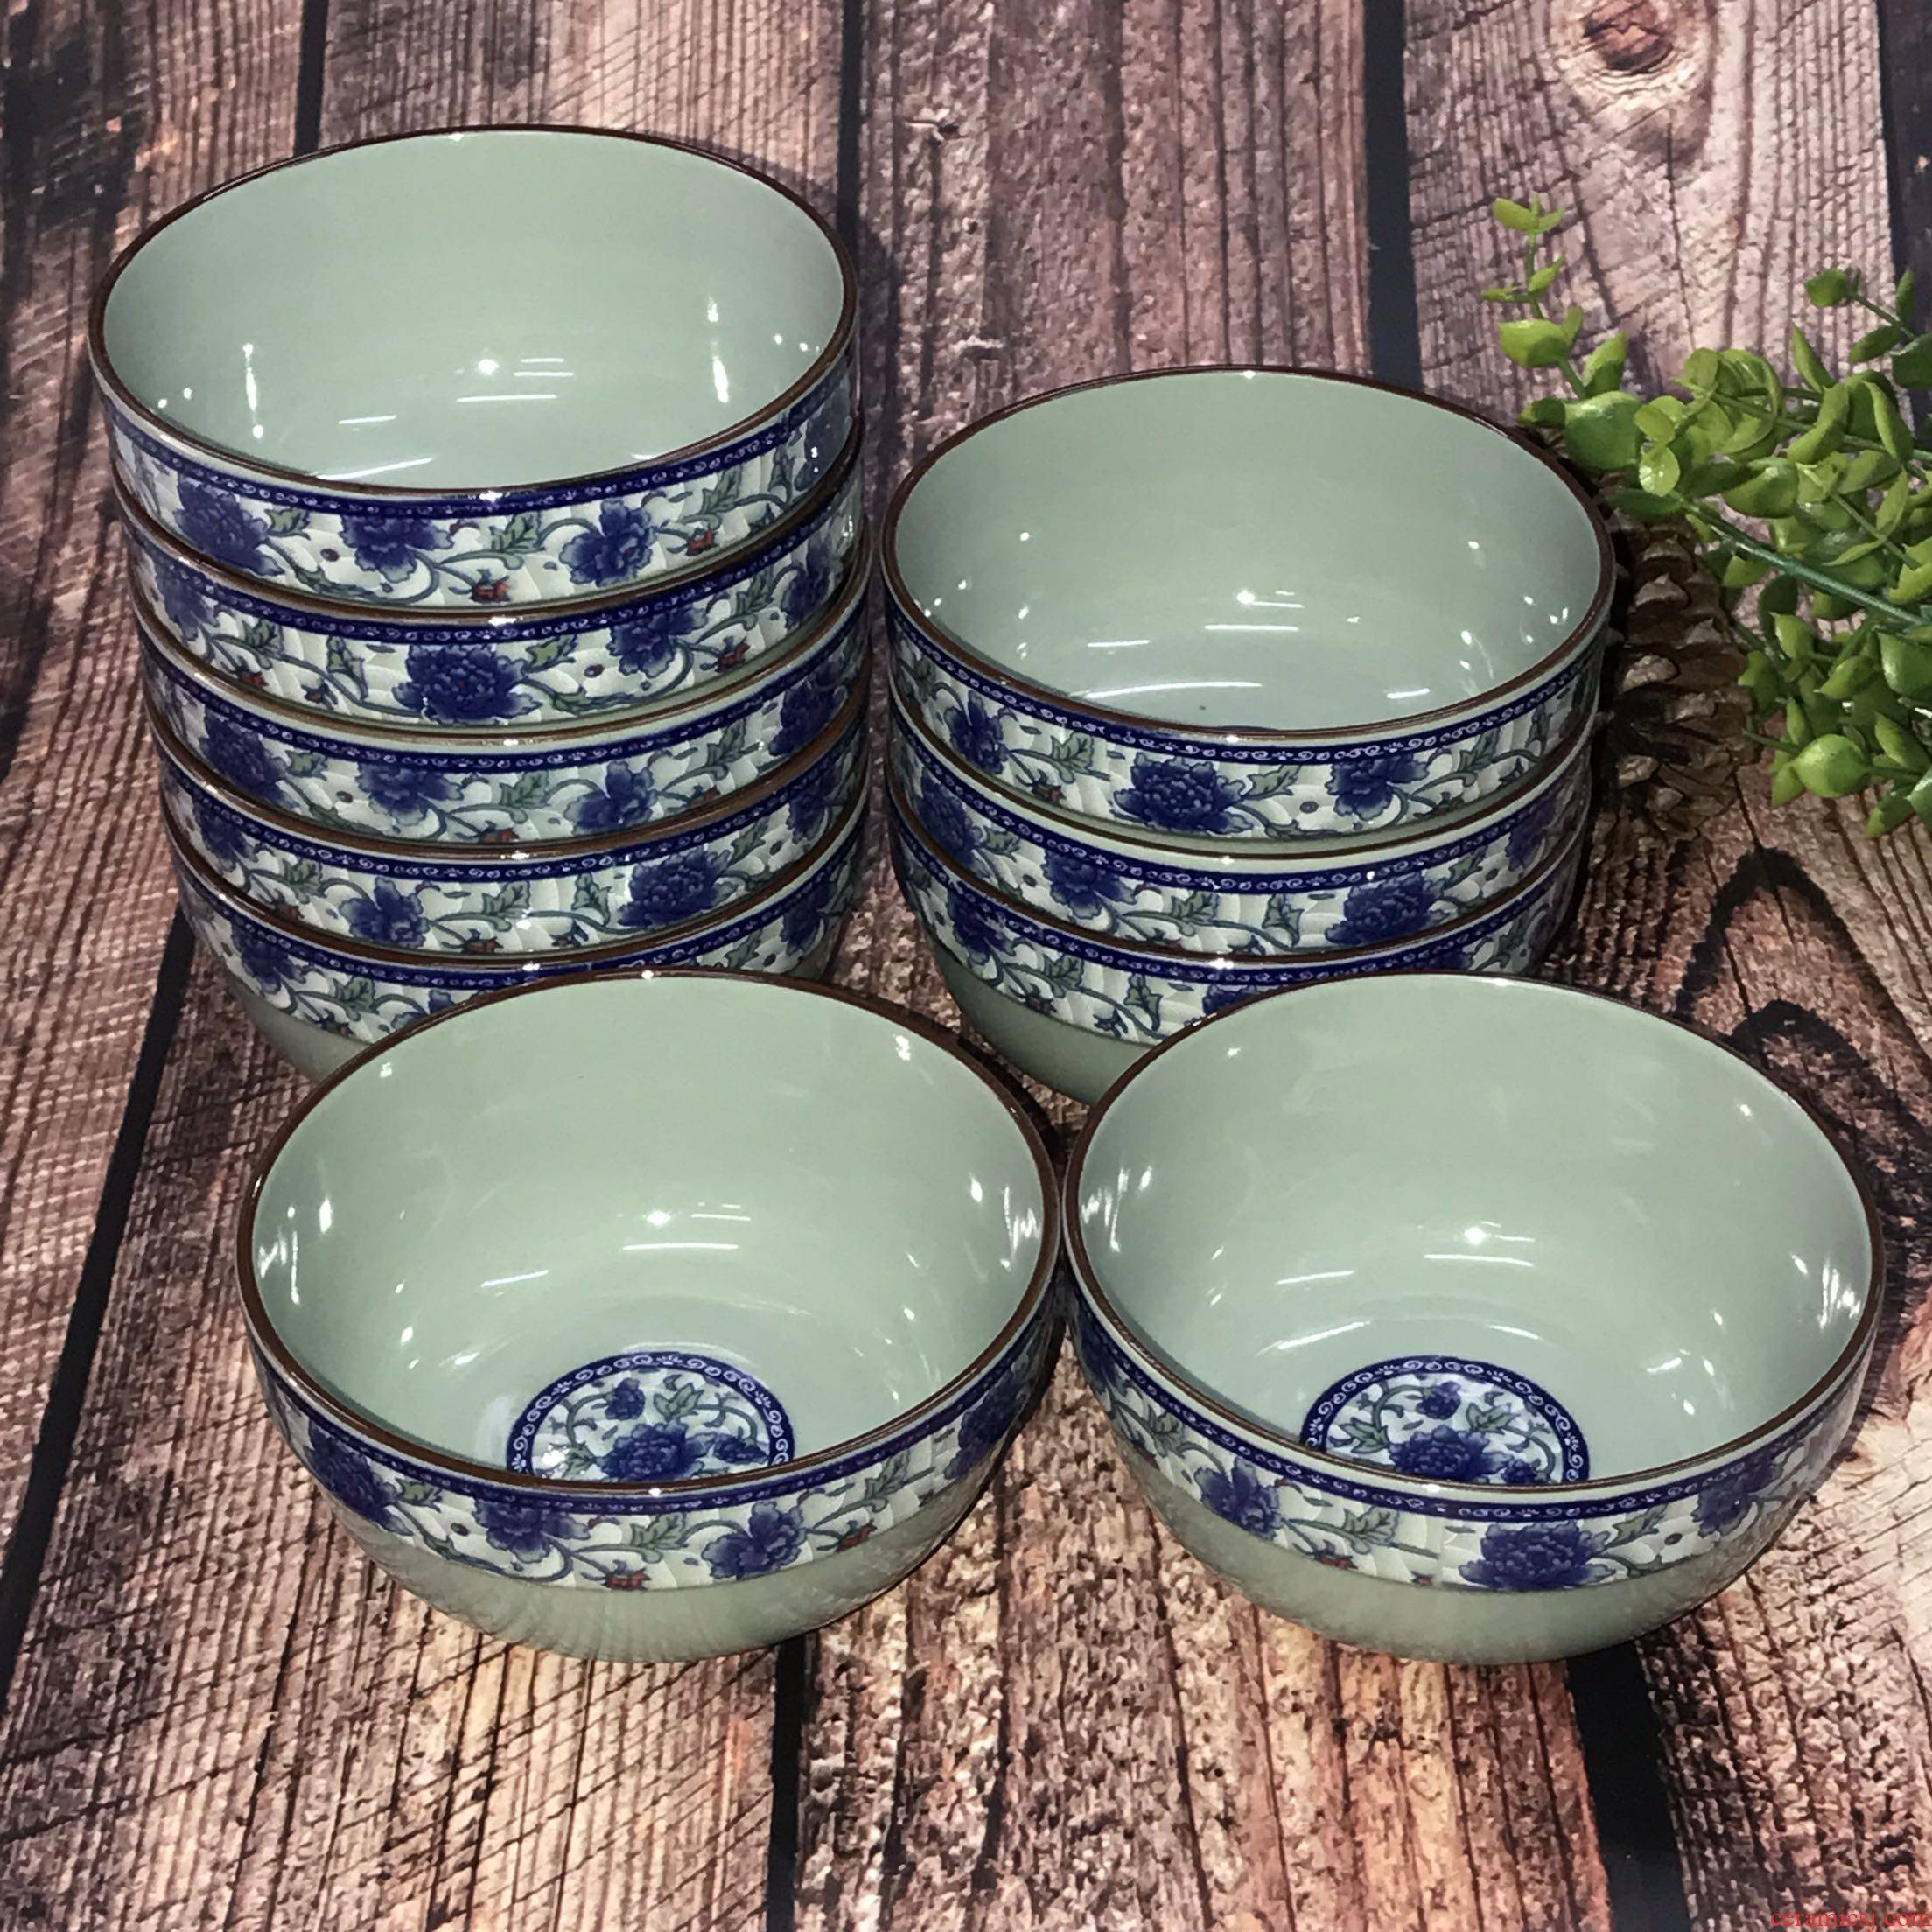 Eat rice bowl of blue and white porcelain household ceramic bowl of soup bowl edge thickening Chinese wind restoring ancient ways tableware 10 m jobs